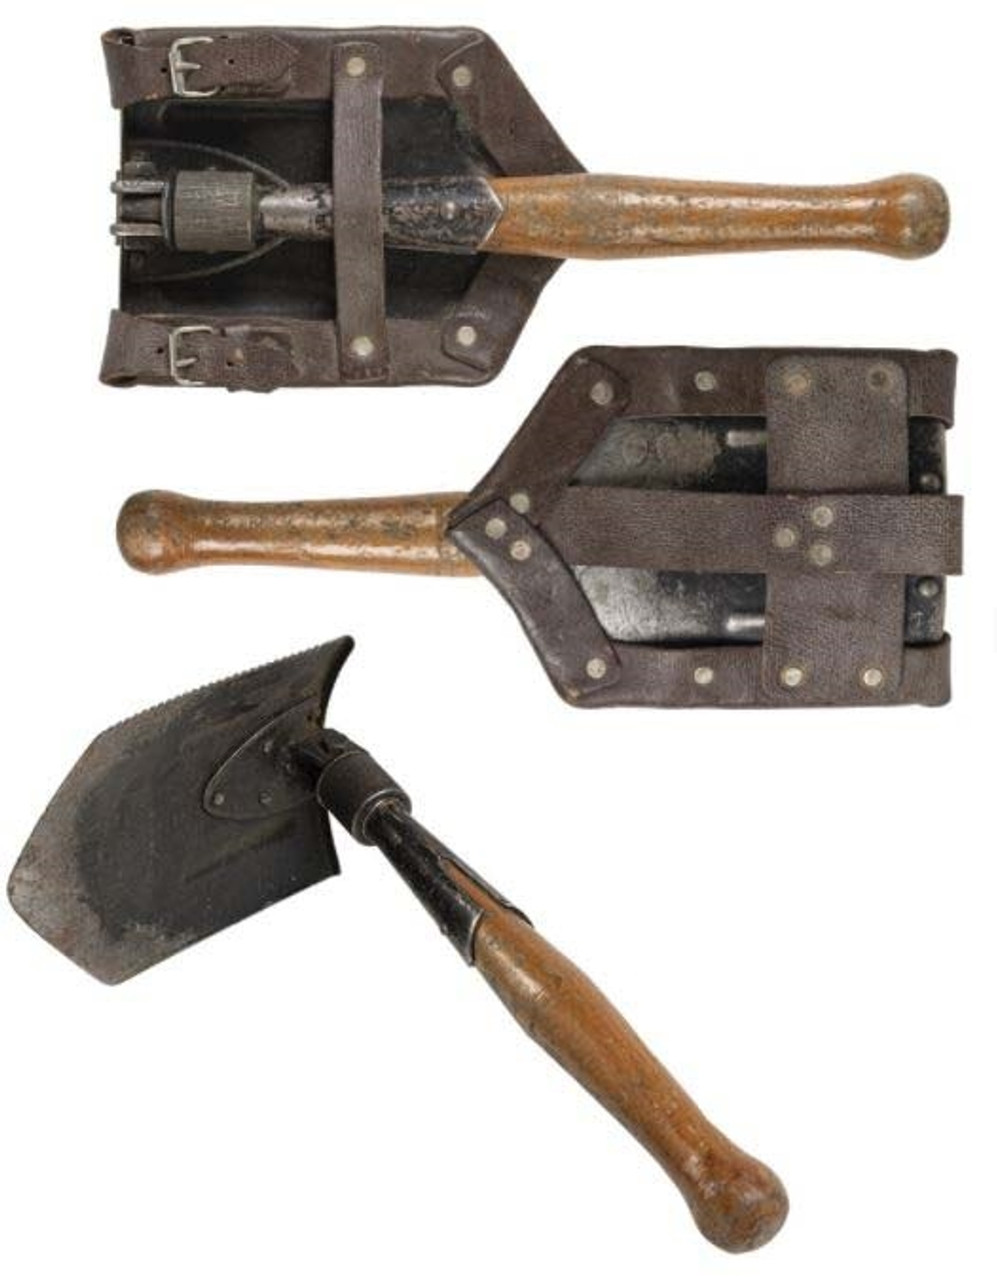 Romanian Folding Shovel With Cover